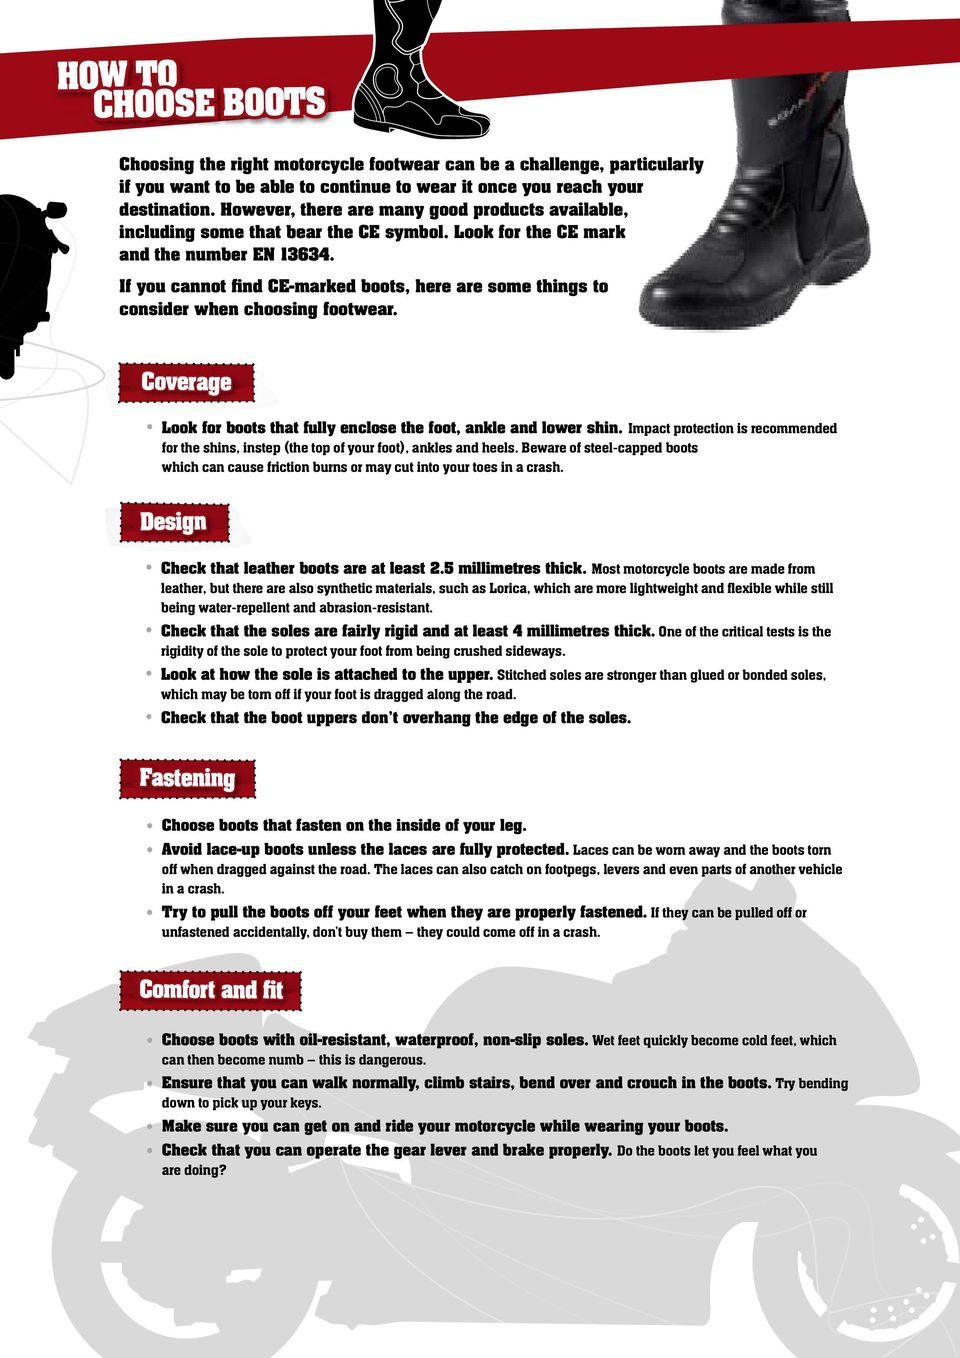 If you cannot find CE-marked boots, here are some things to consider when choosing footwear. Coverage look for boots that fully enclose the foot, ankle and lower shin.